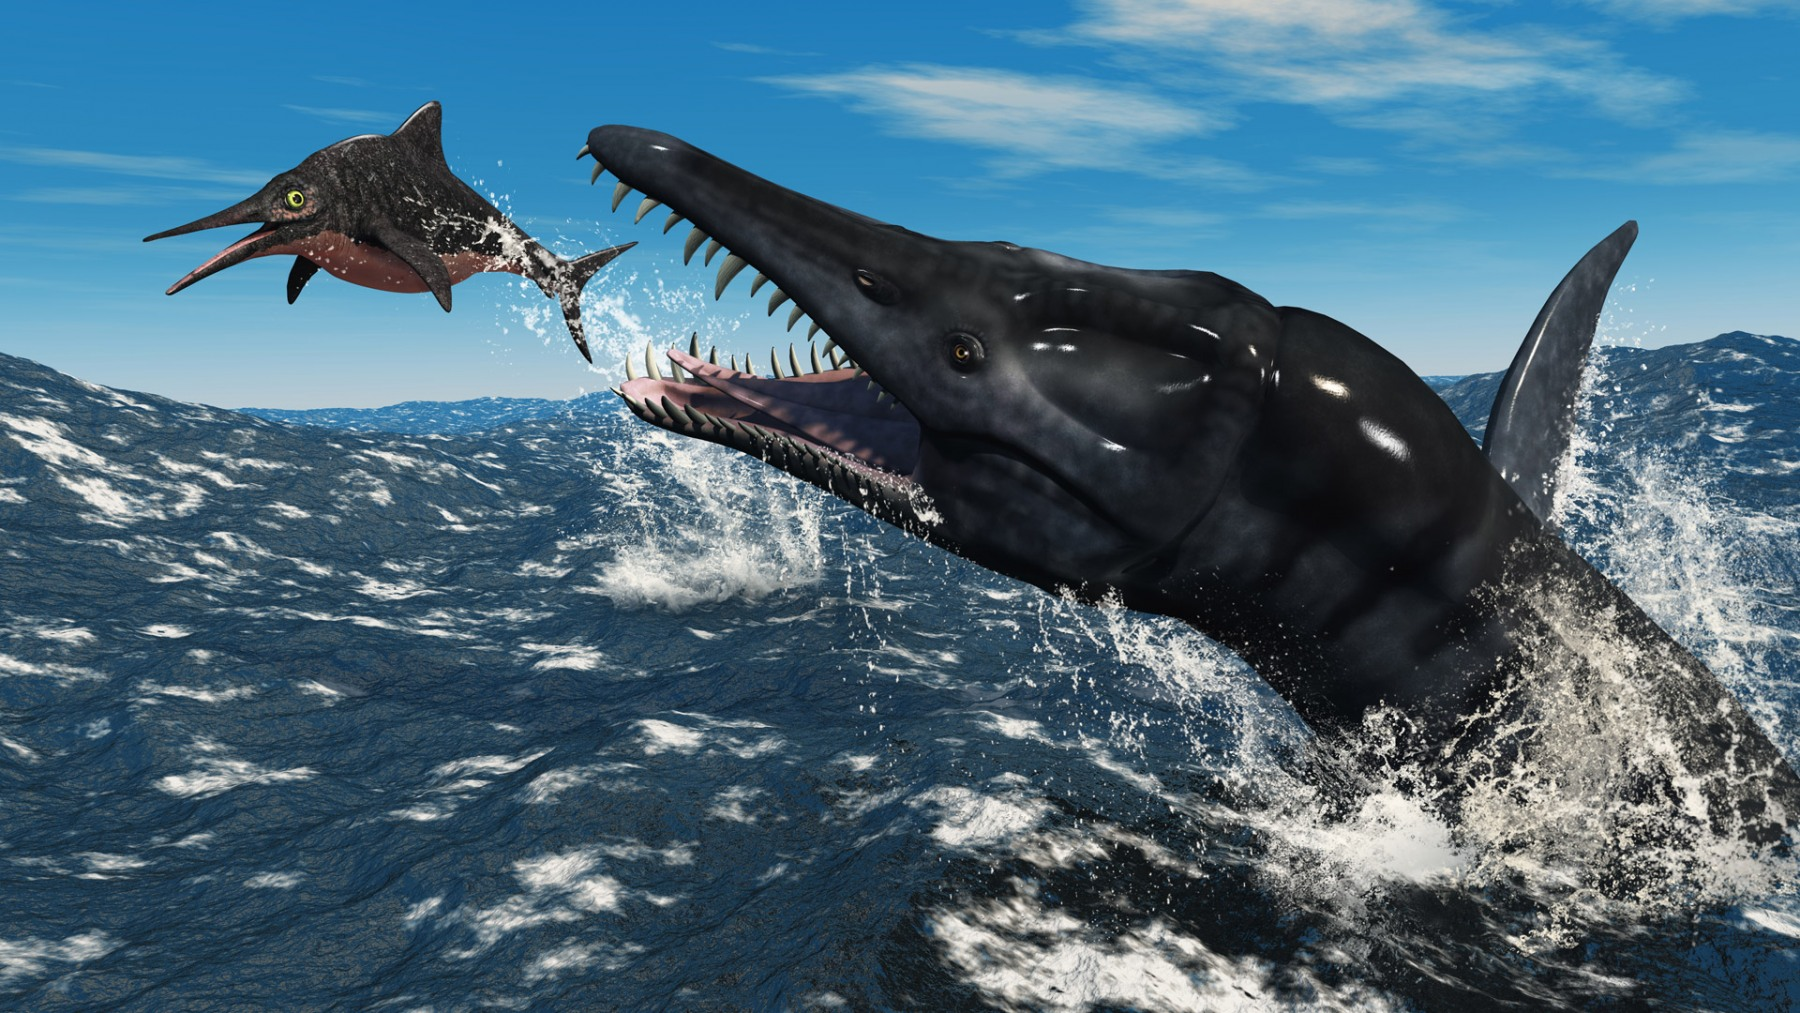 LIOPLEURODON ATTACKING